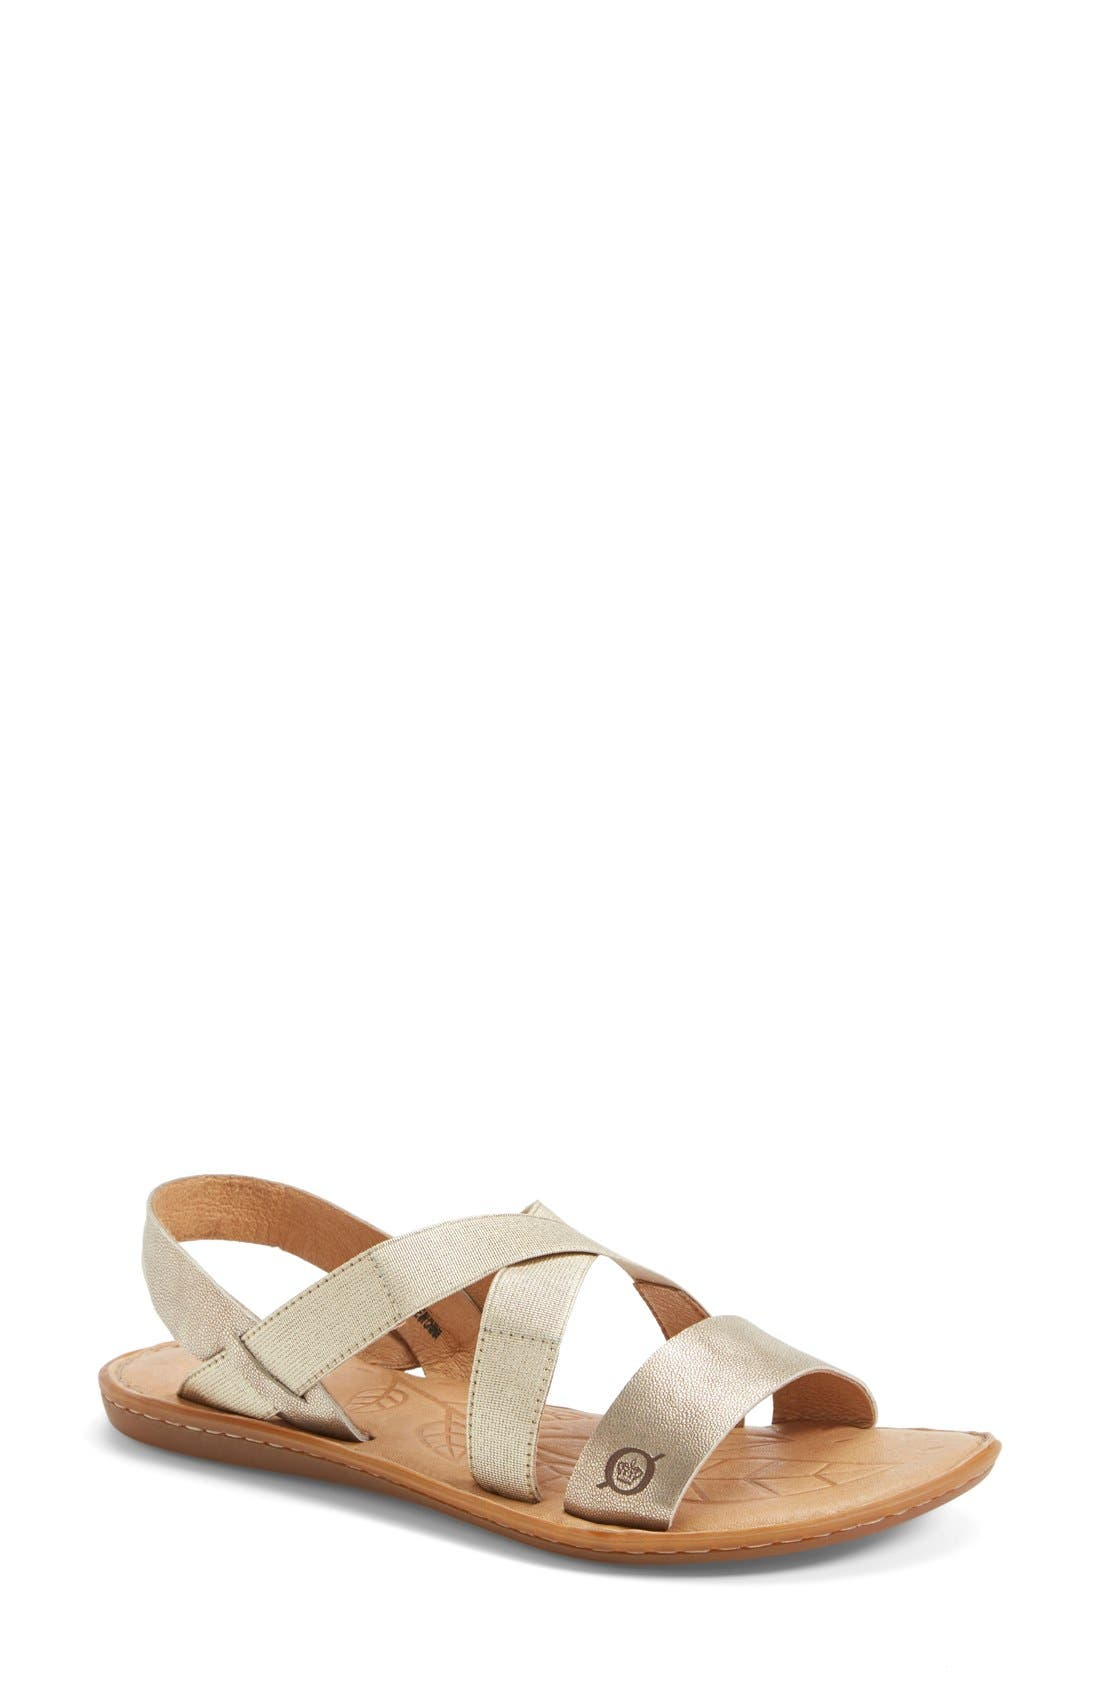 Alternate Image 1 Selected - Børn 'Icelyn' Flat Sandal (Women)